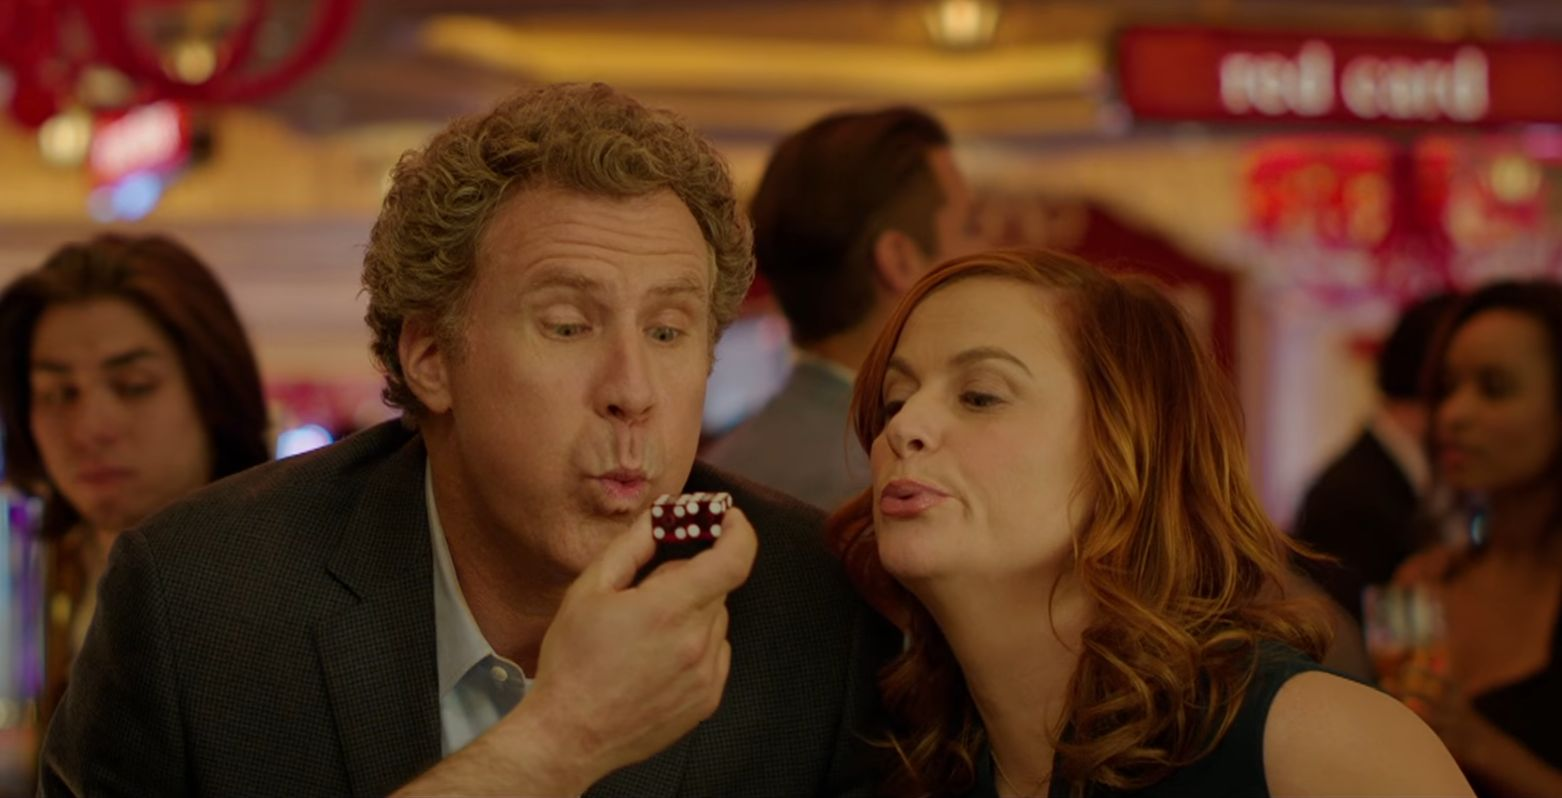 Amy Poehler and Will Ferrell run a casino in 'The House' trailer